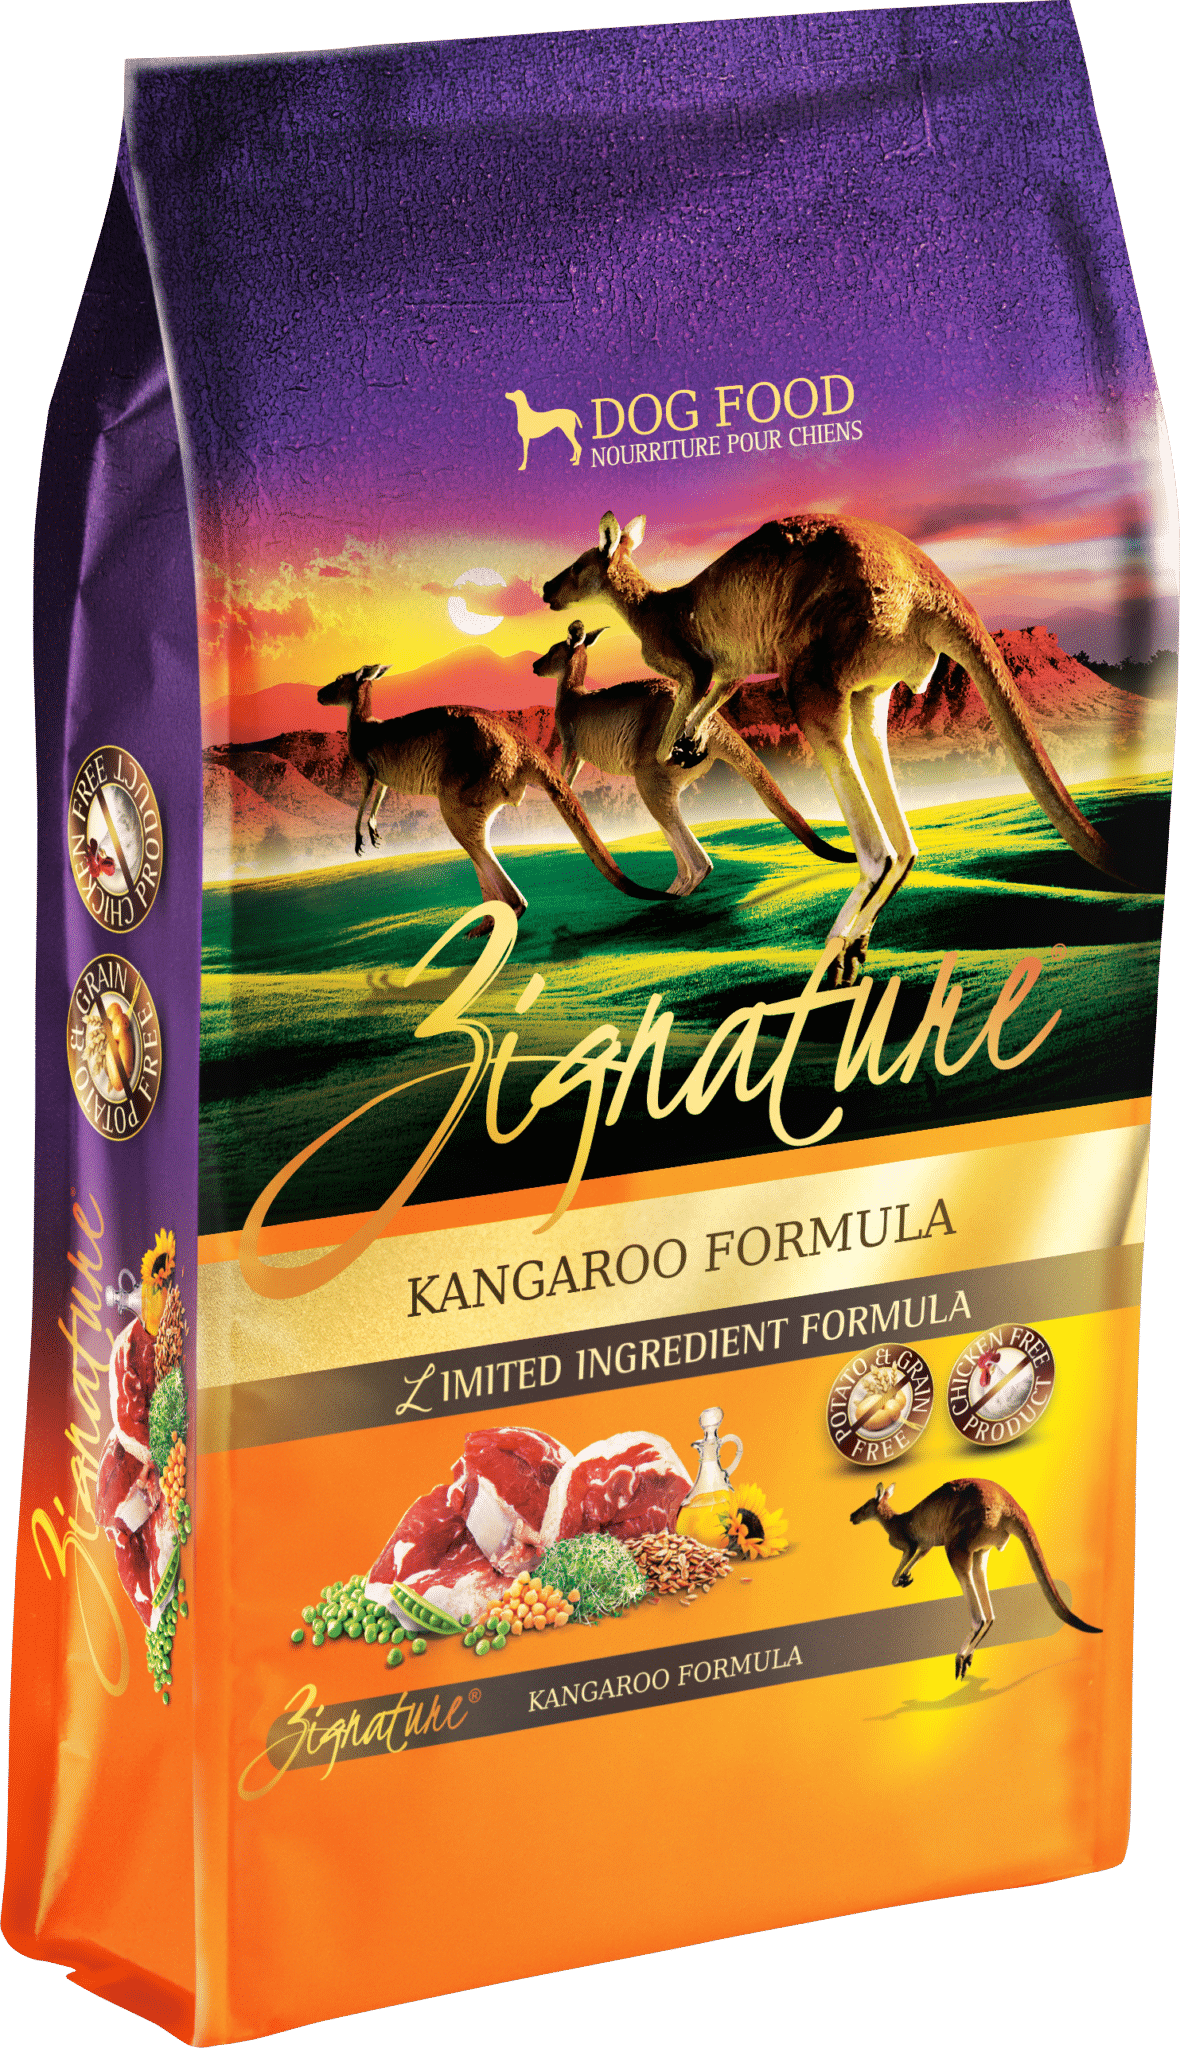 Zignature Zignature Kangaroo Limited Ingredient Formula Dog Food 13.5lbs Product Image